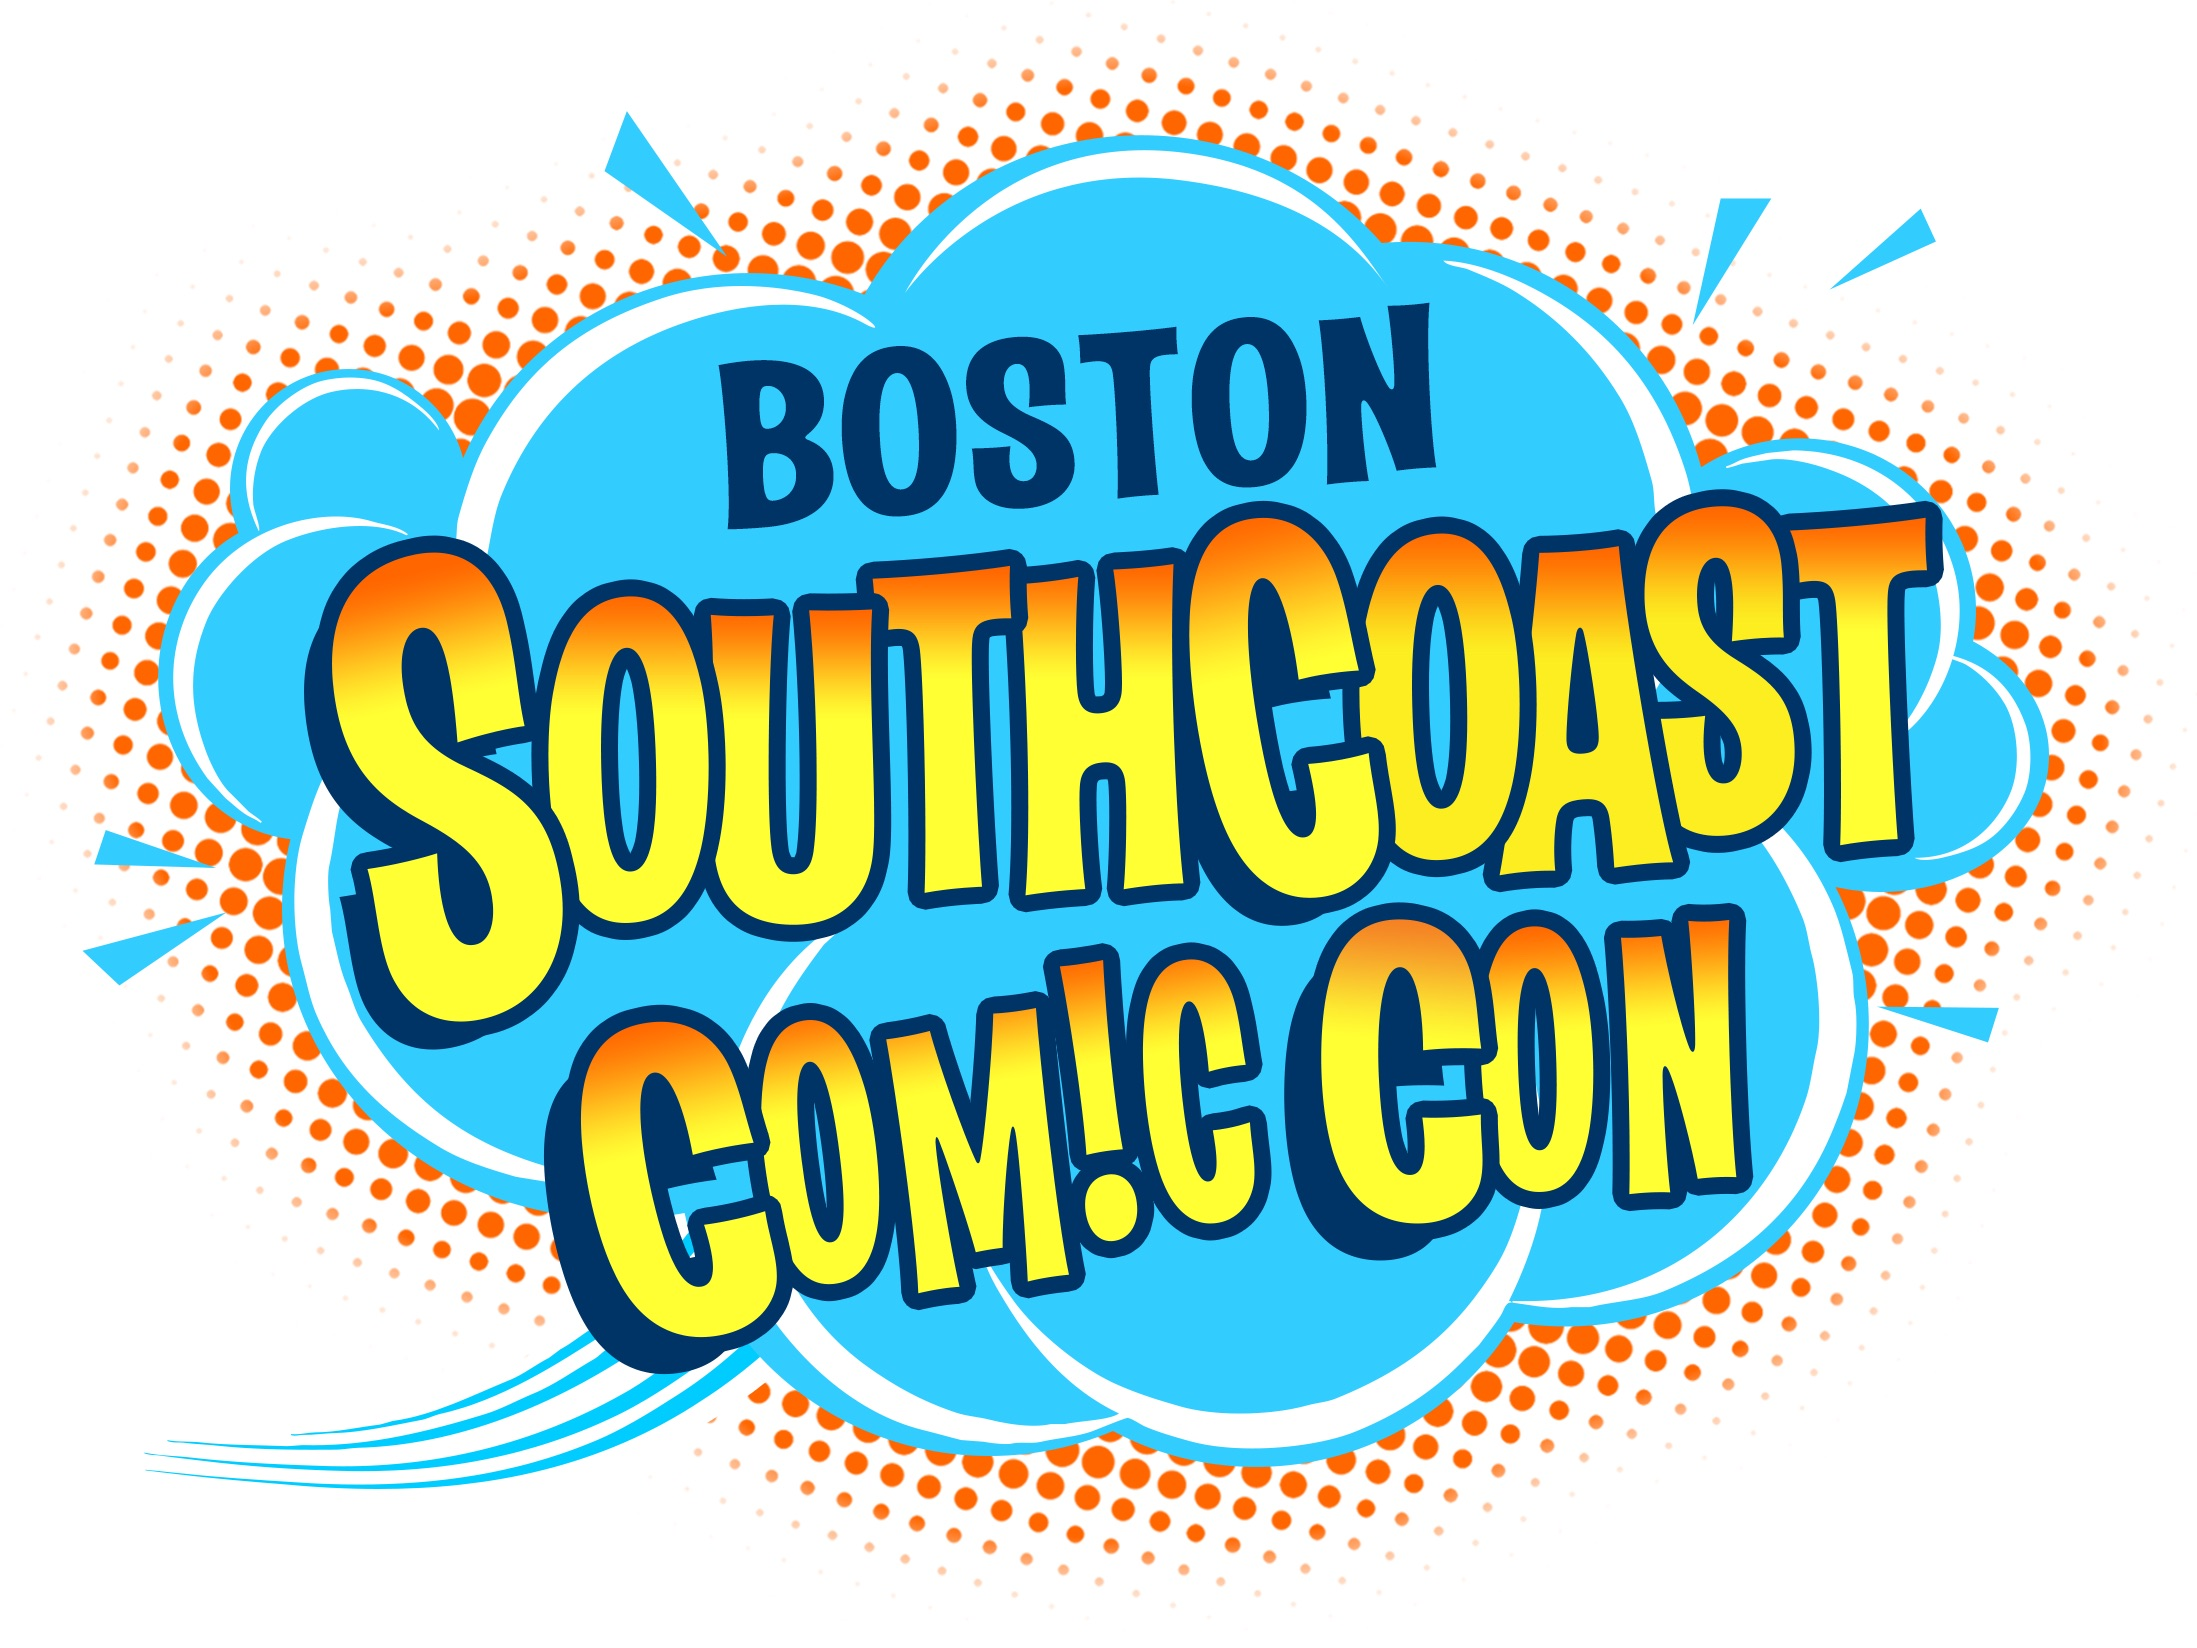 Boston SouthCoast Comic Con